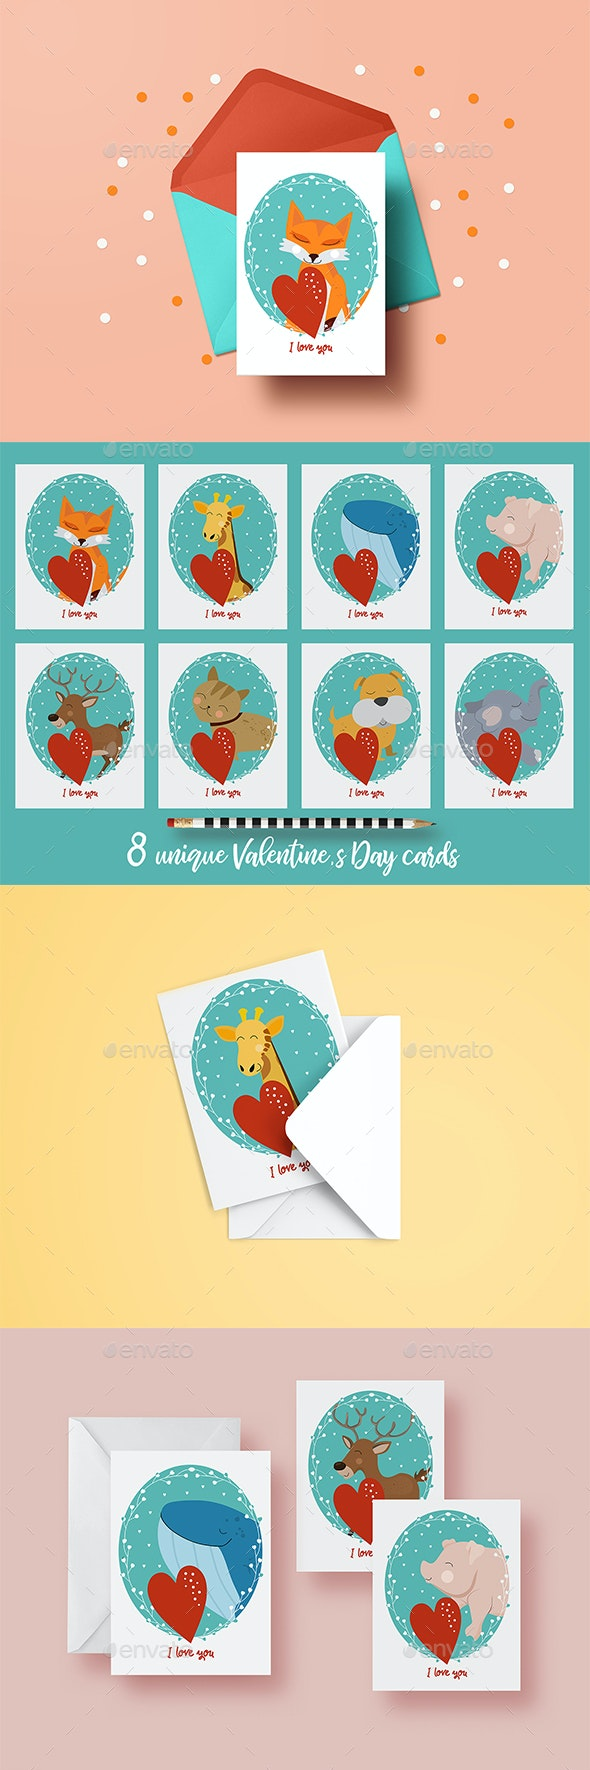 8 Valentine's Day Cards with Animals - Greeting Cards Cards & Invites